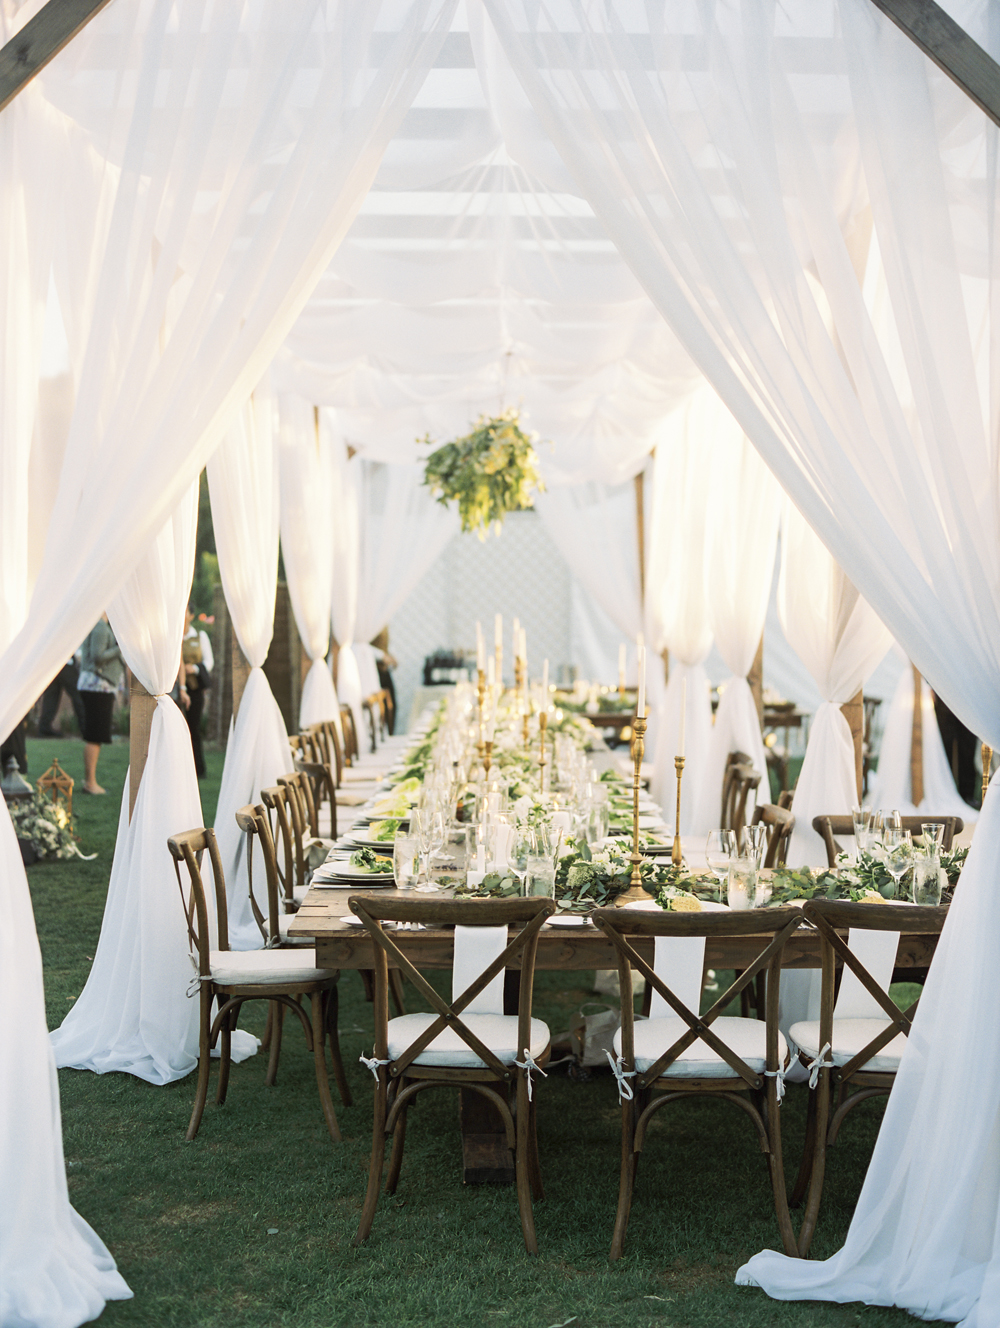 Wood wedding reception table outdoor wedding with pretty drapery linens not on tables